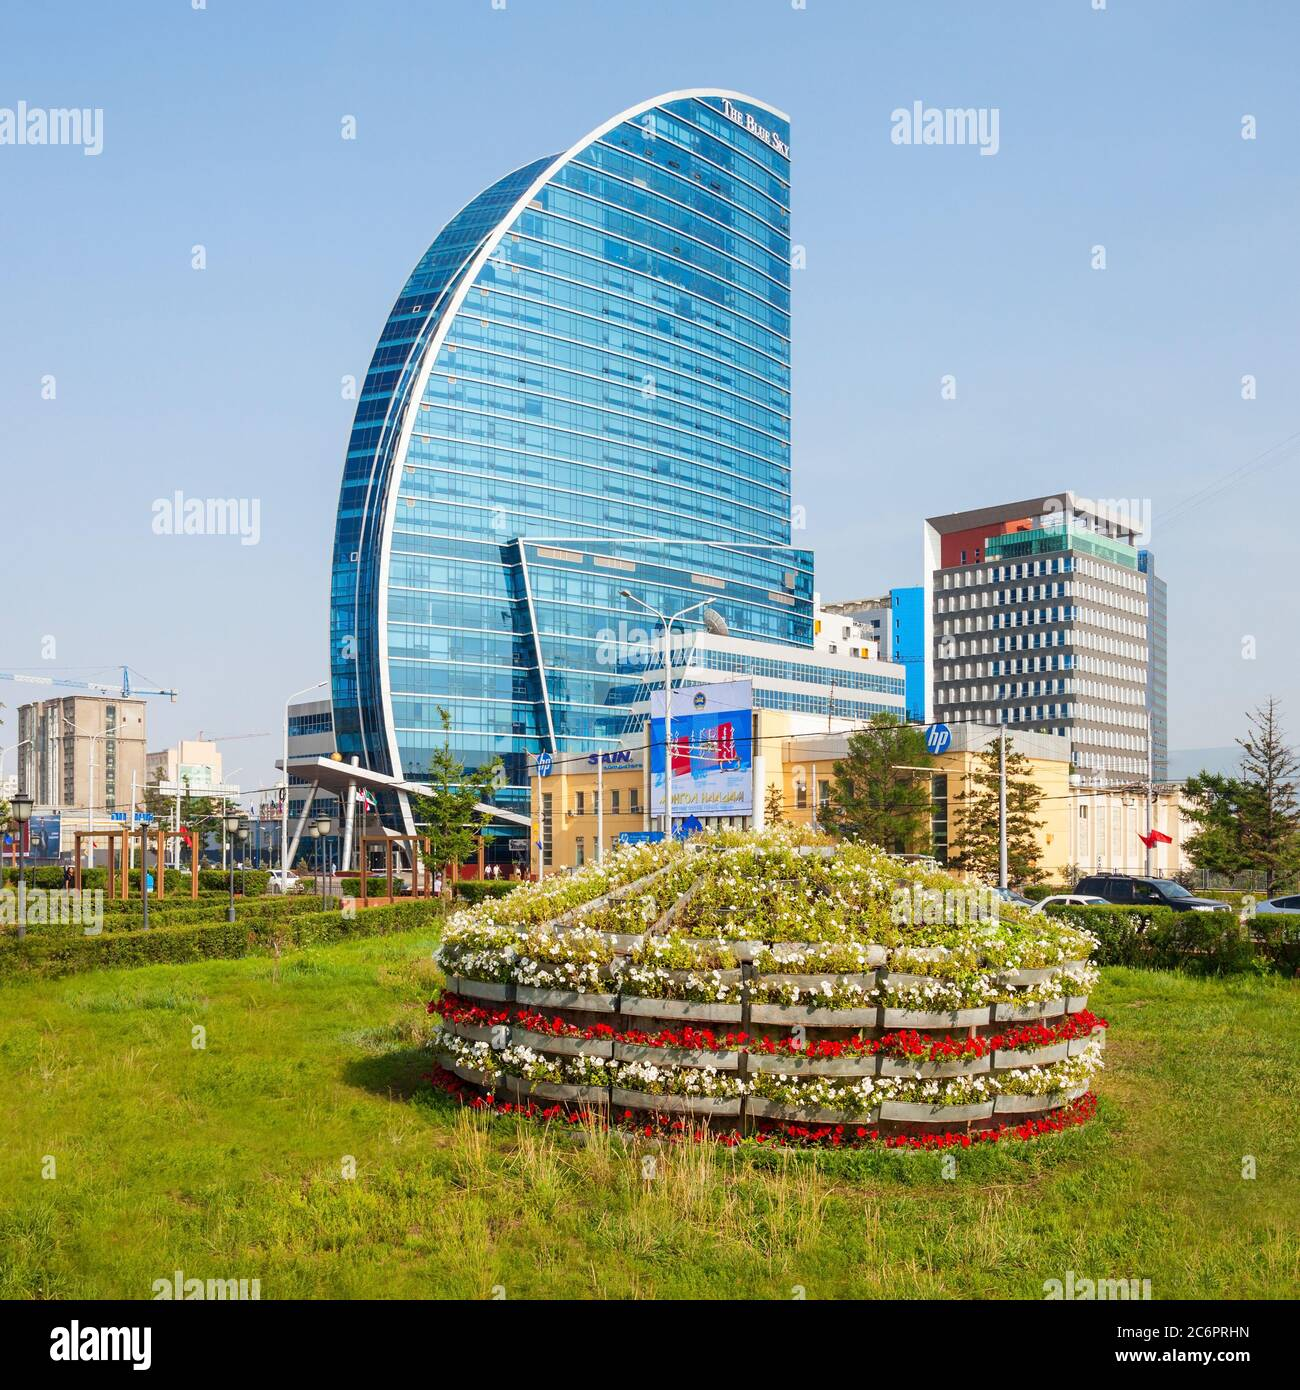 ULAANBAATAR, MONGOLIA - JULY 12, 2016: The Blue Sky Tower is located in Ulaanbaatar, Mongolia. The skyscraper is used as office space, conferences, a Stock Photo